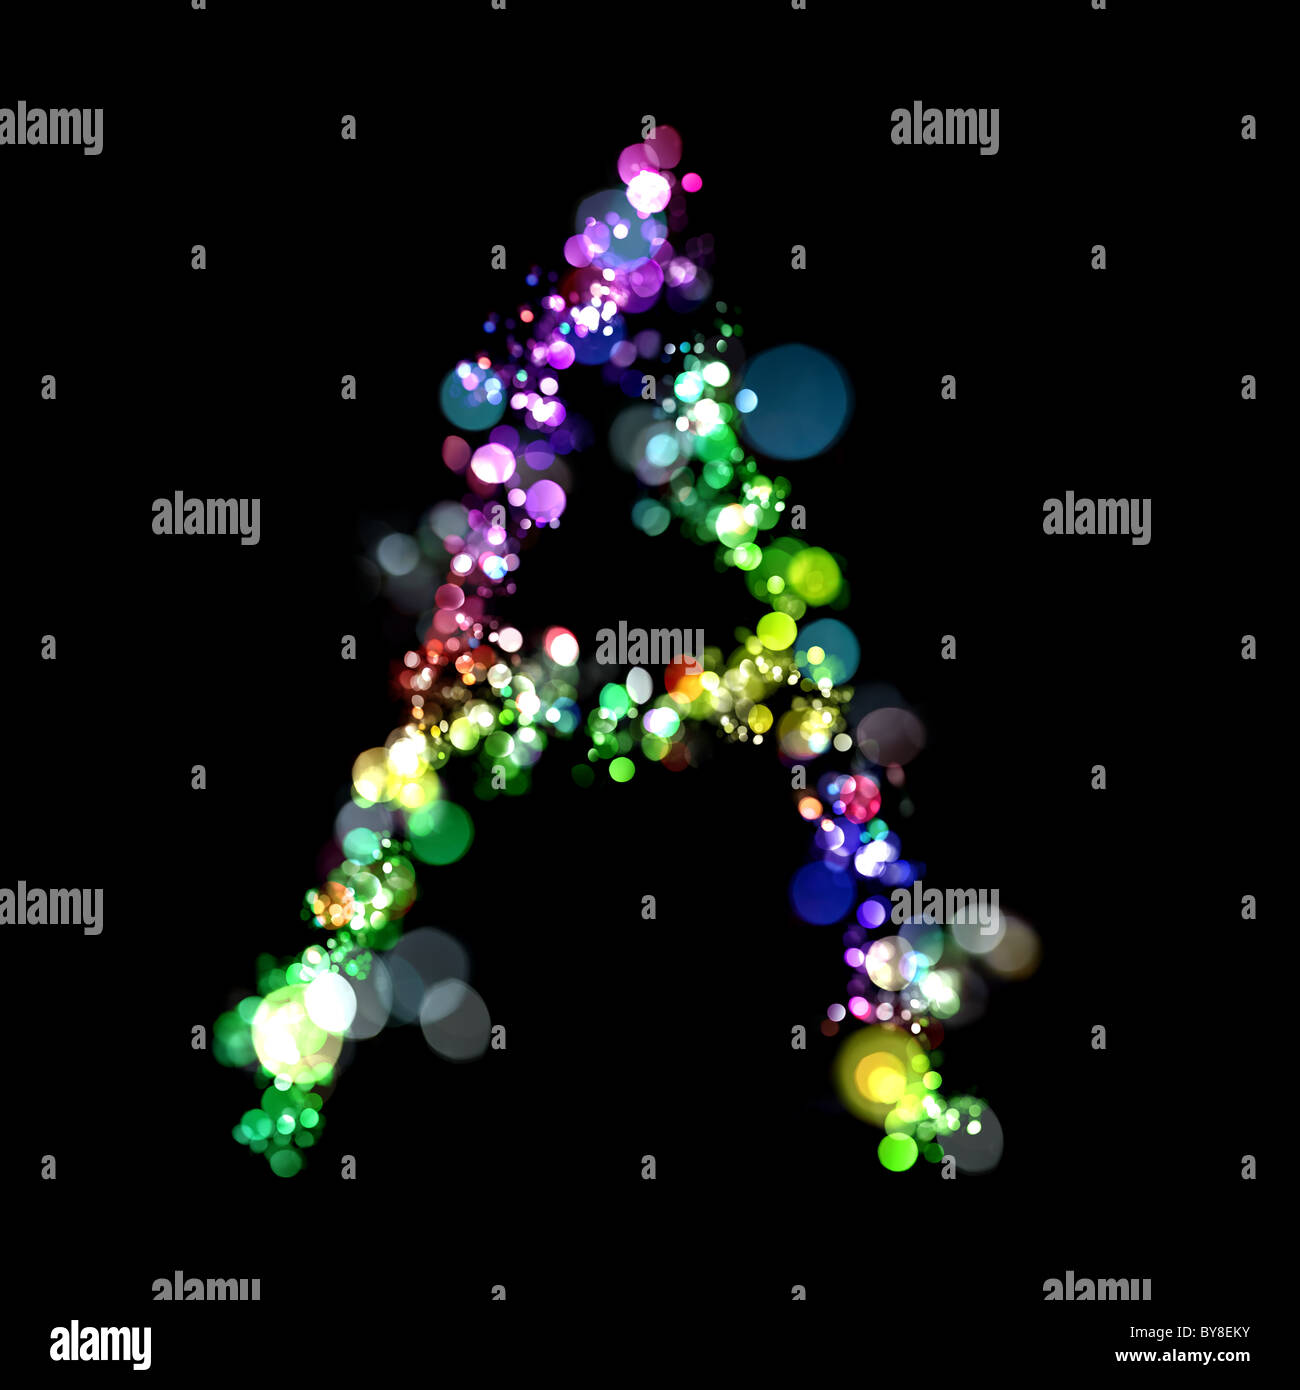 Lights In The Shape Of Letters